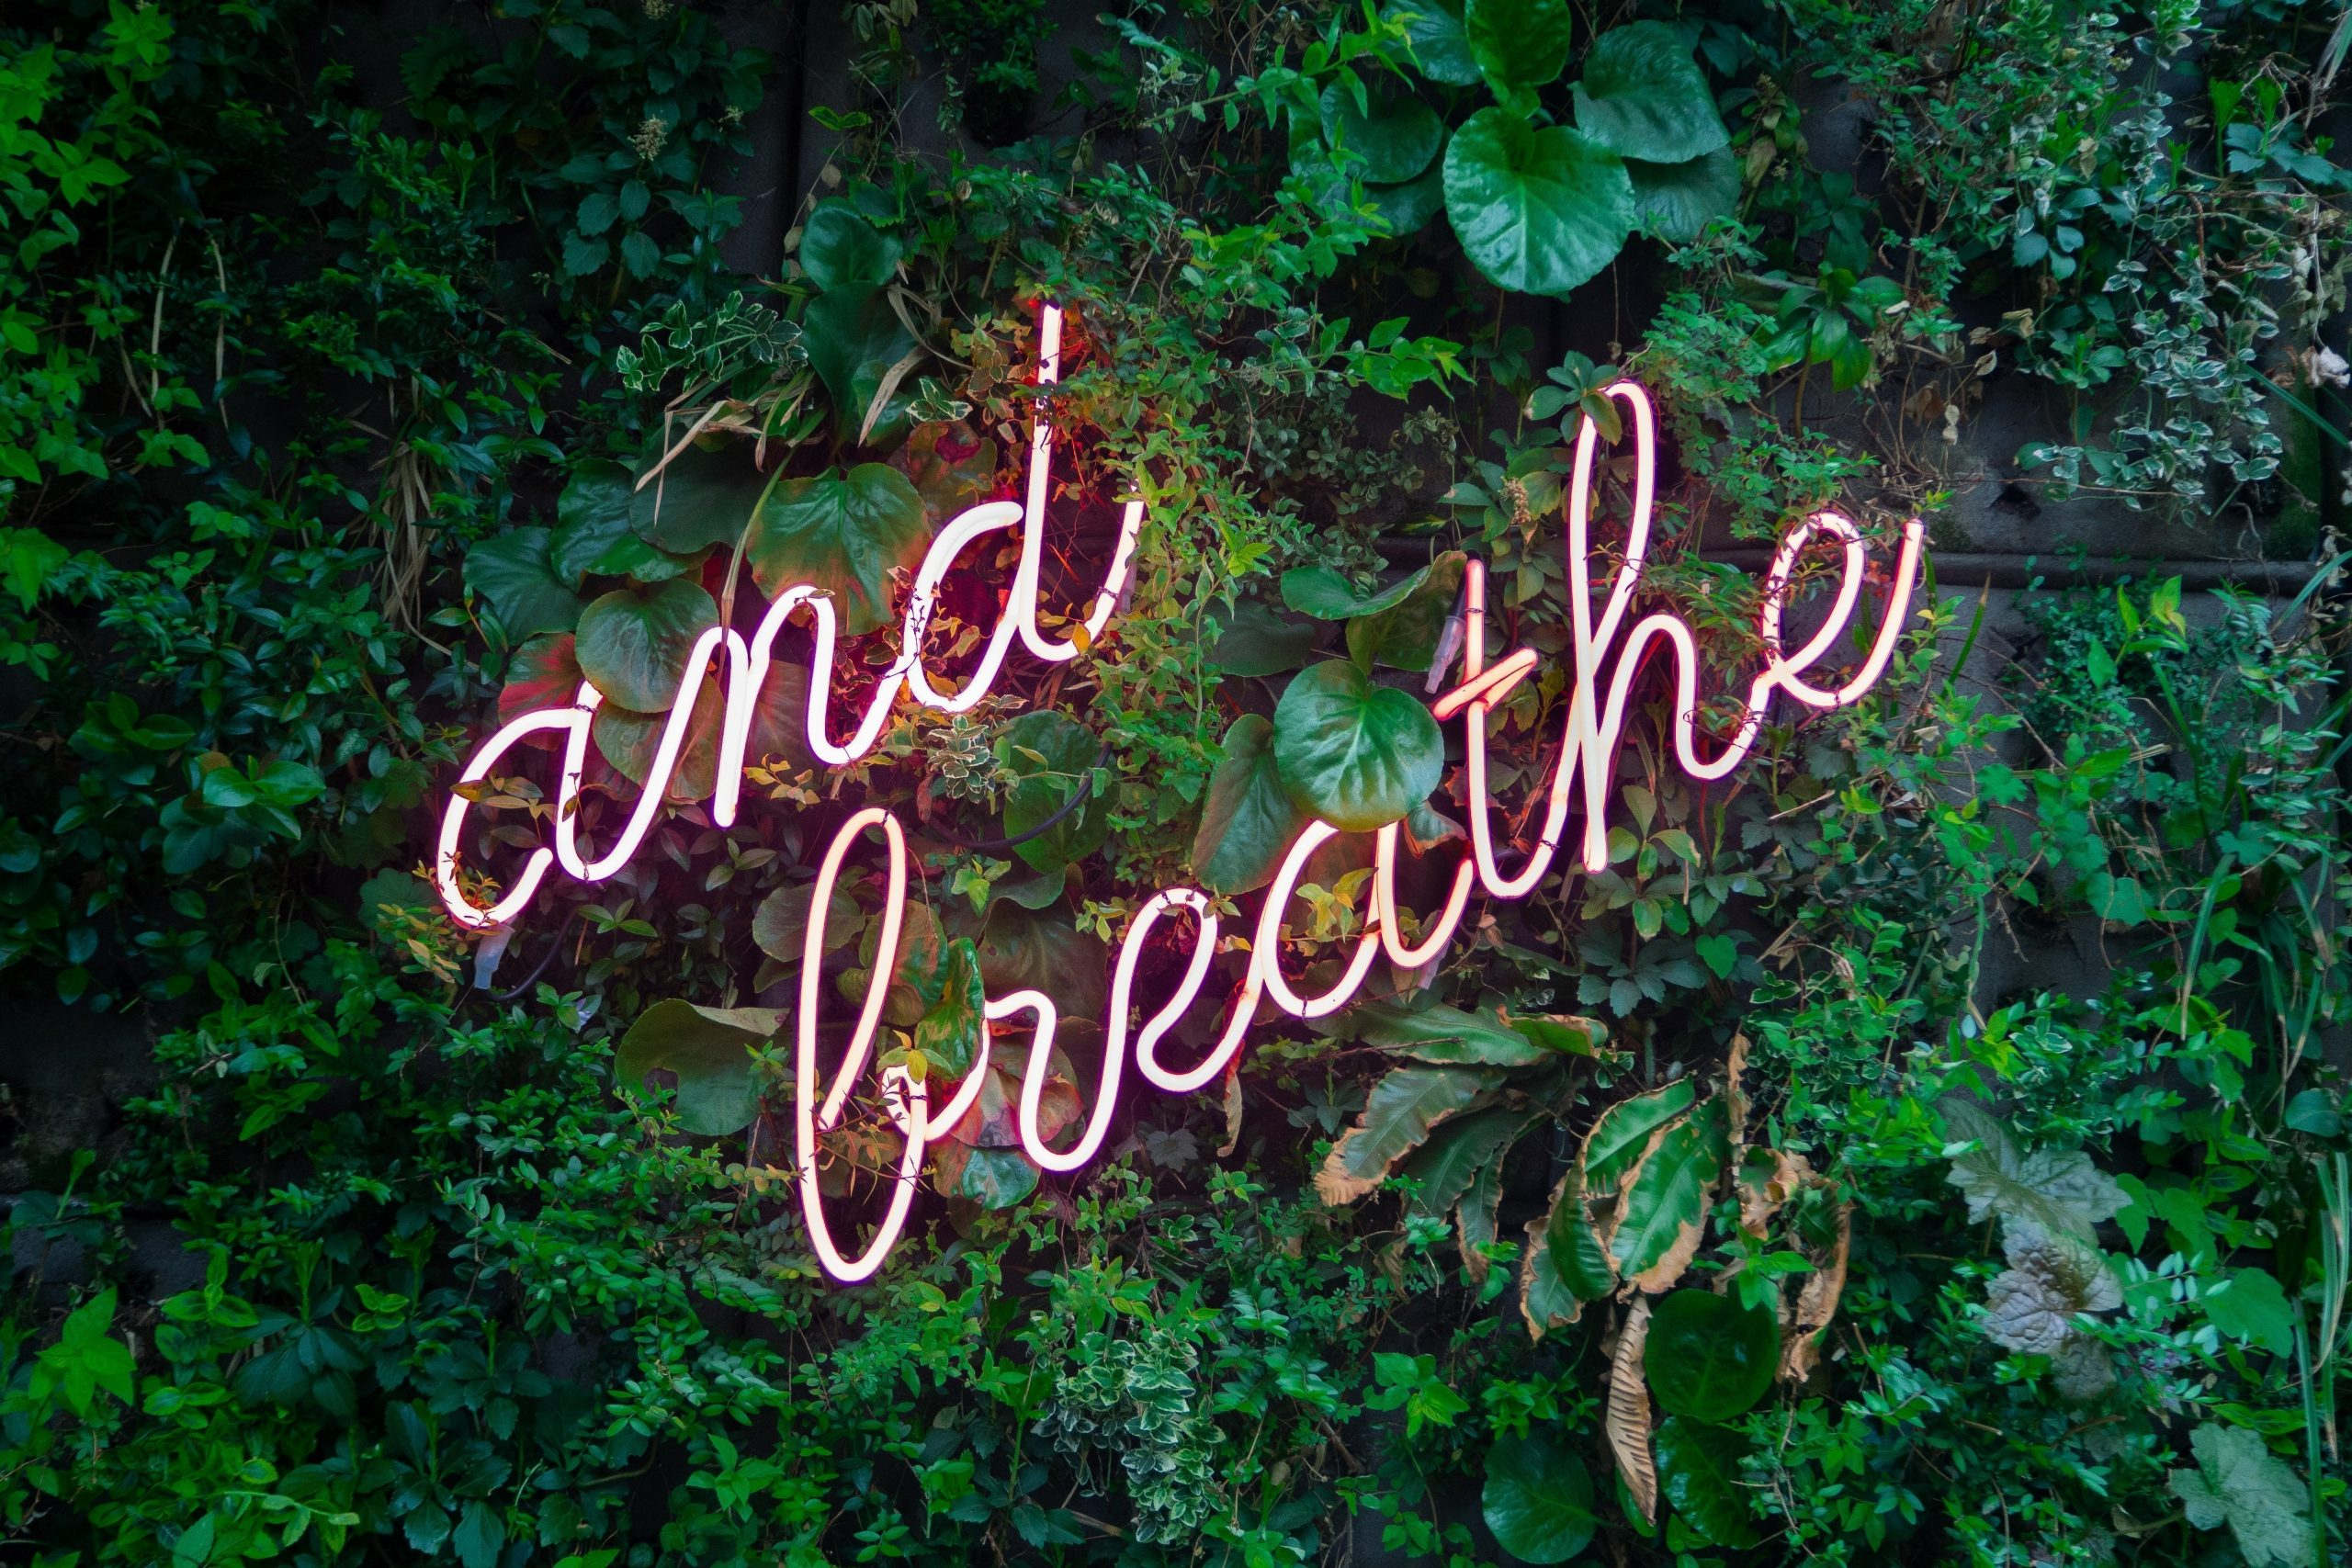 And Breathe to represent resilience